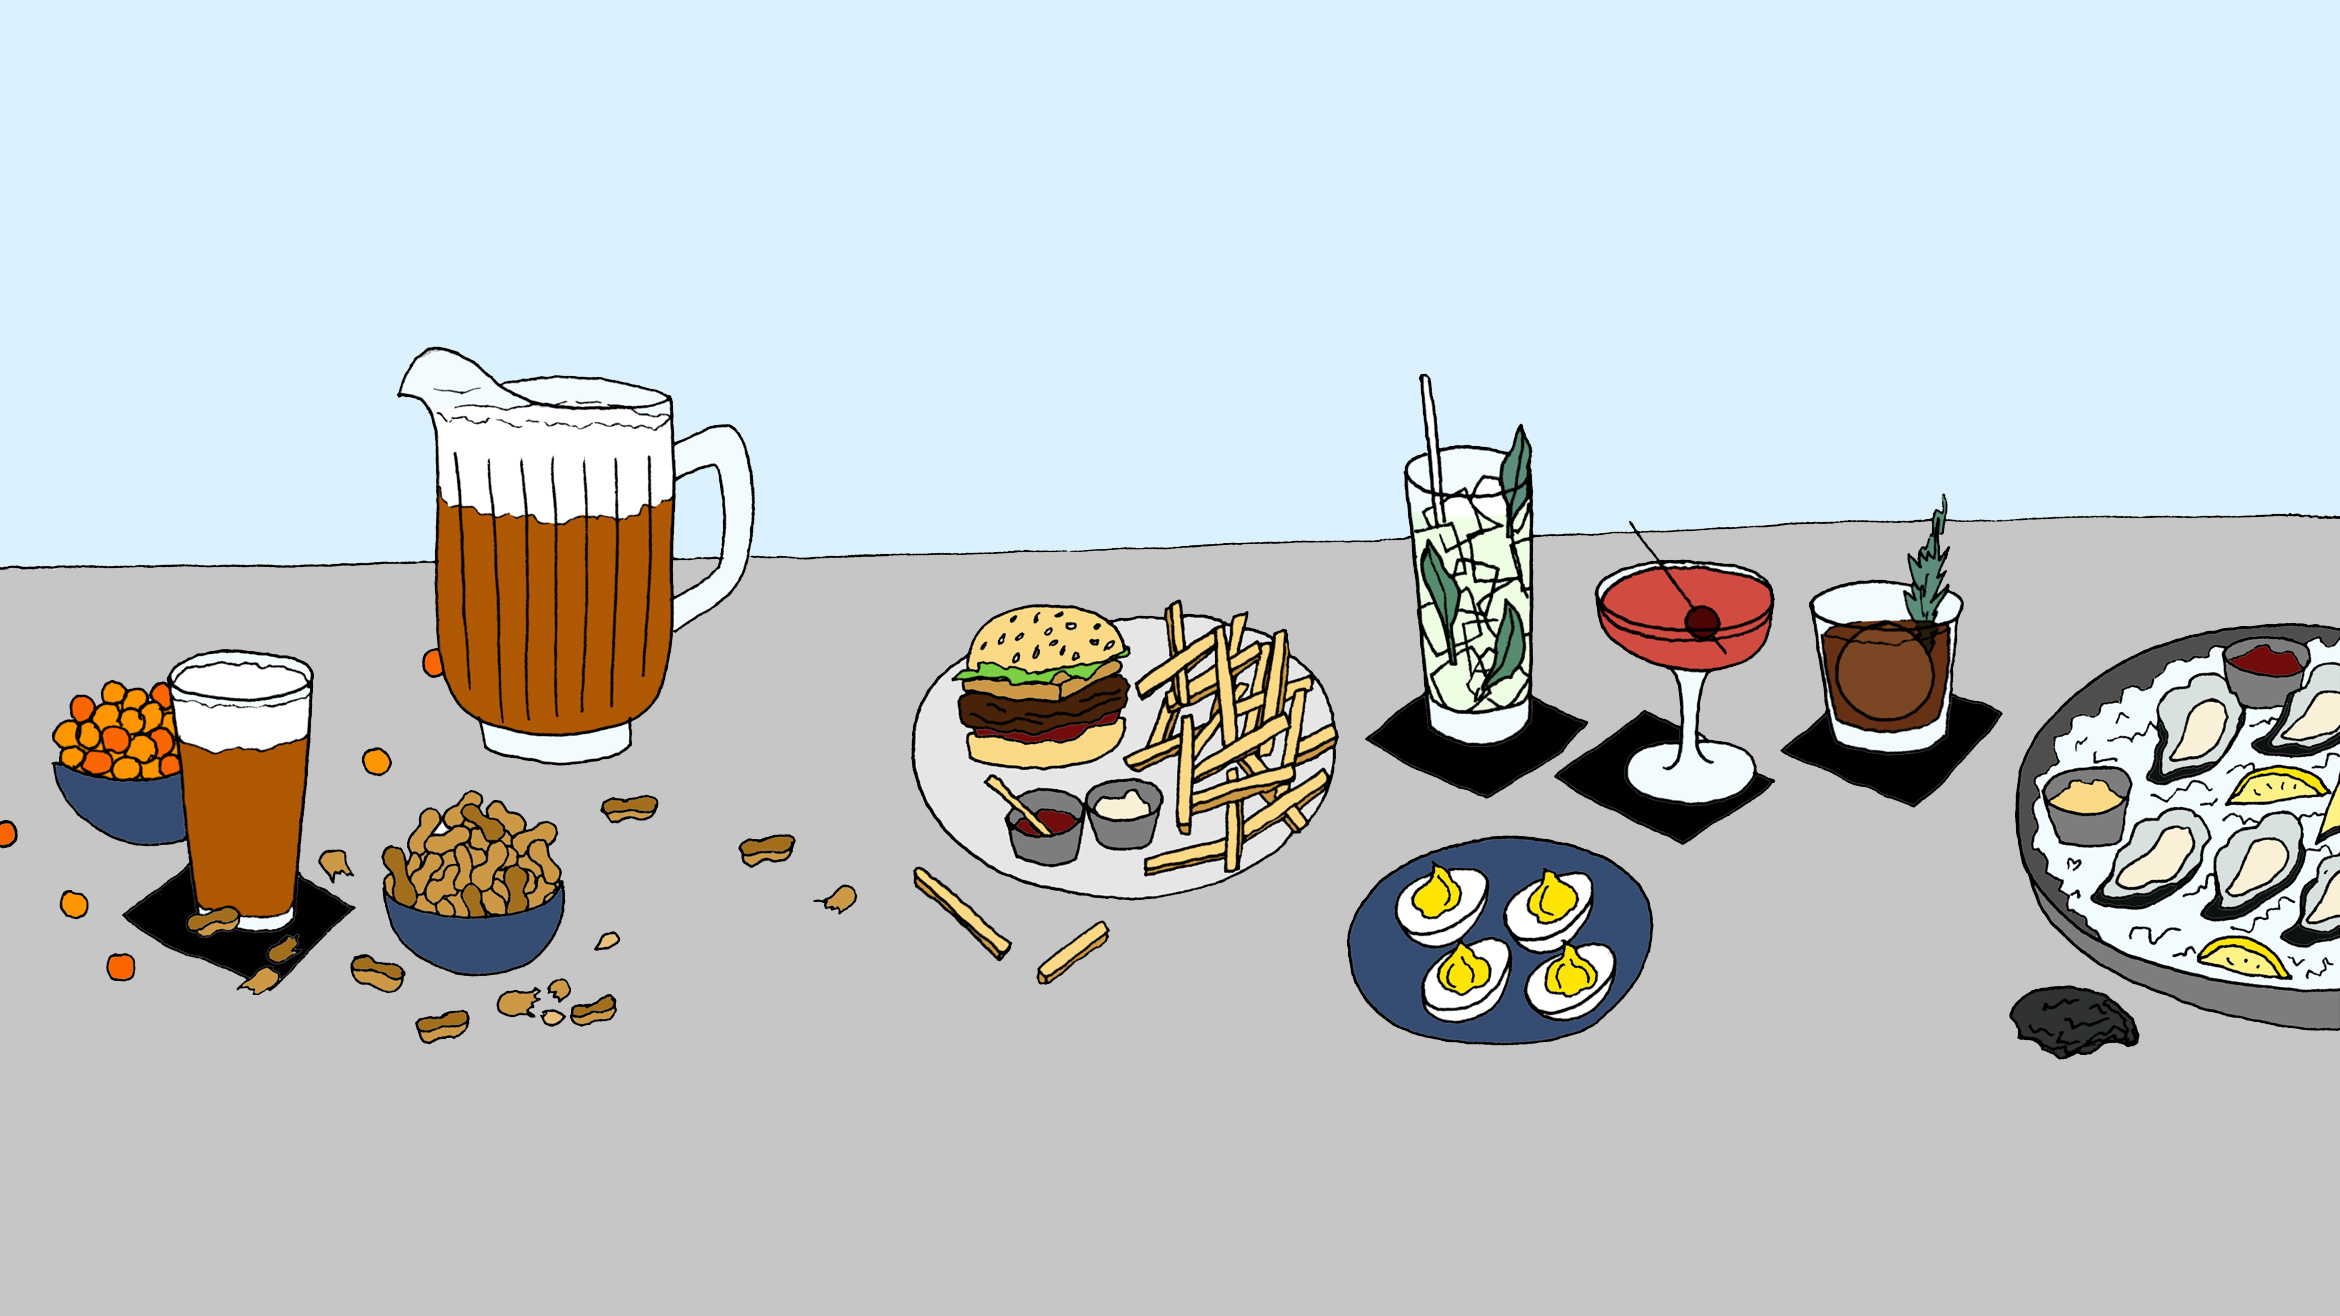 Celebrate clipart food. Punch what is bar